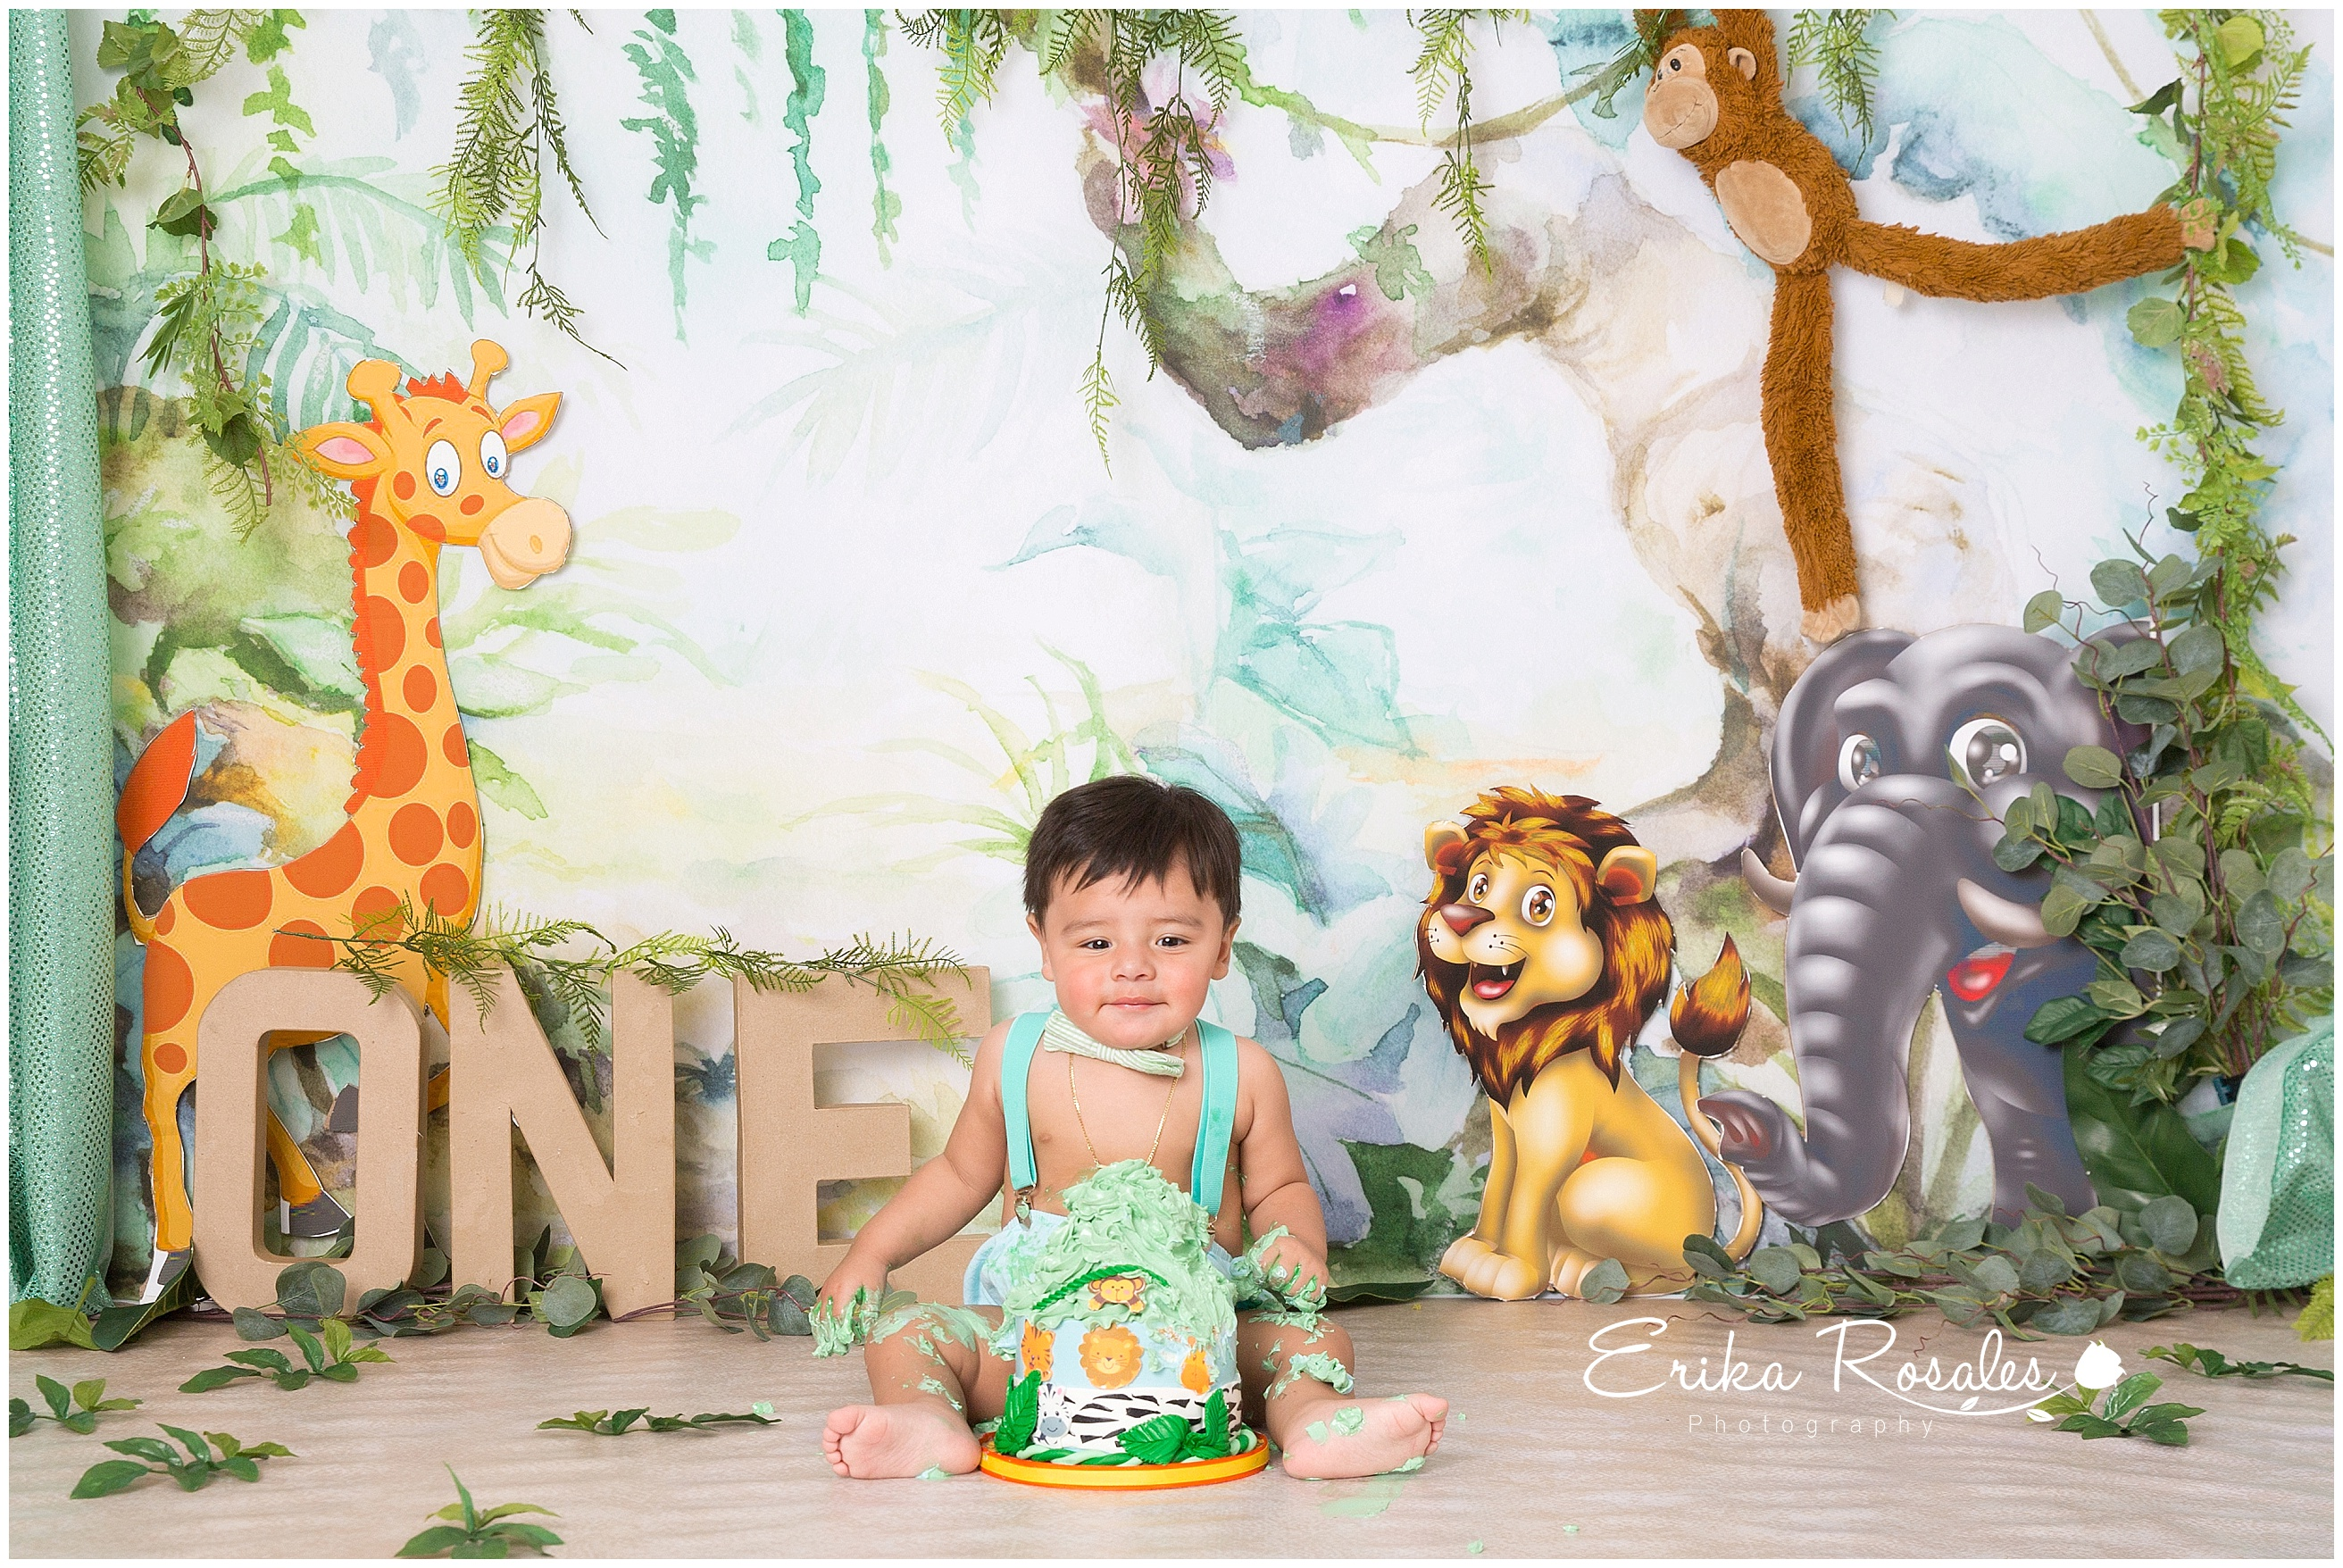 This entry was posted in cake smash session and tagged baby photo baby photo session baby photographer the bronx studio baby photography baby photoshoot